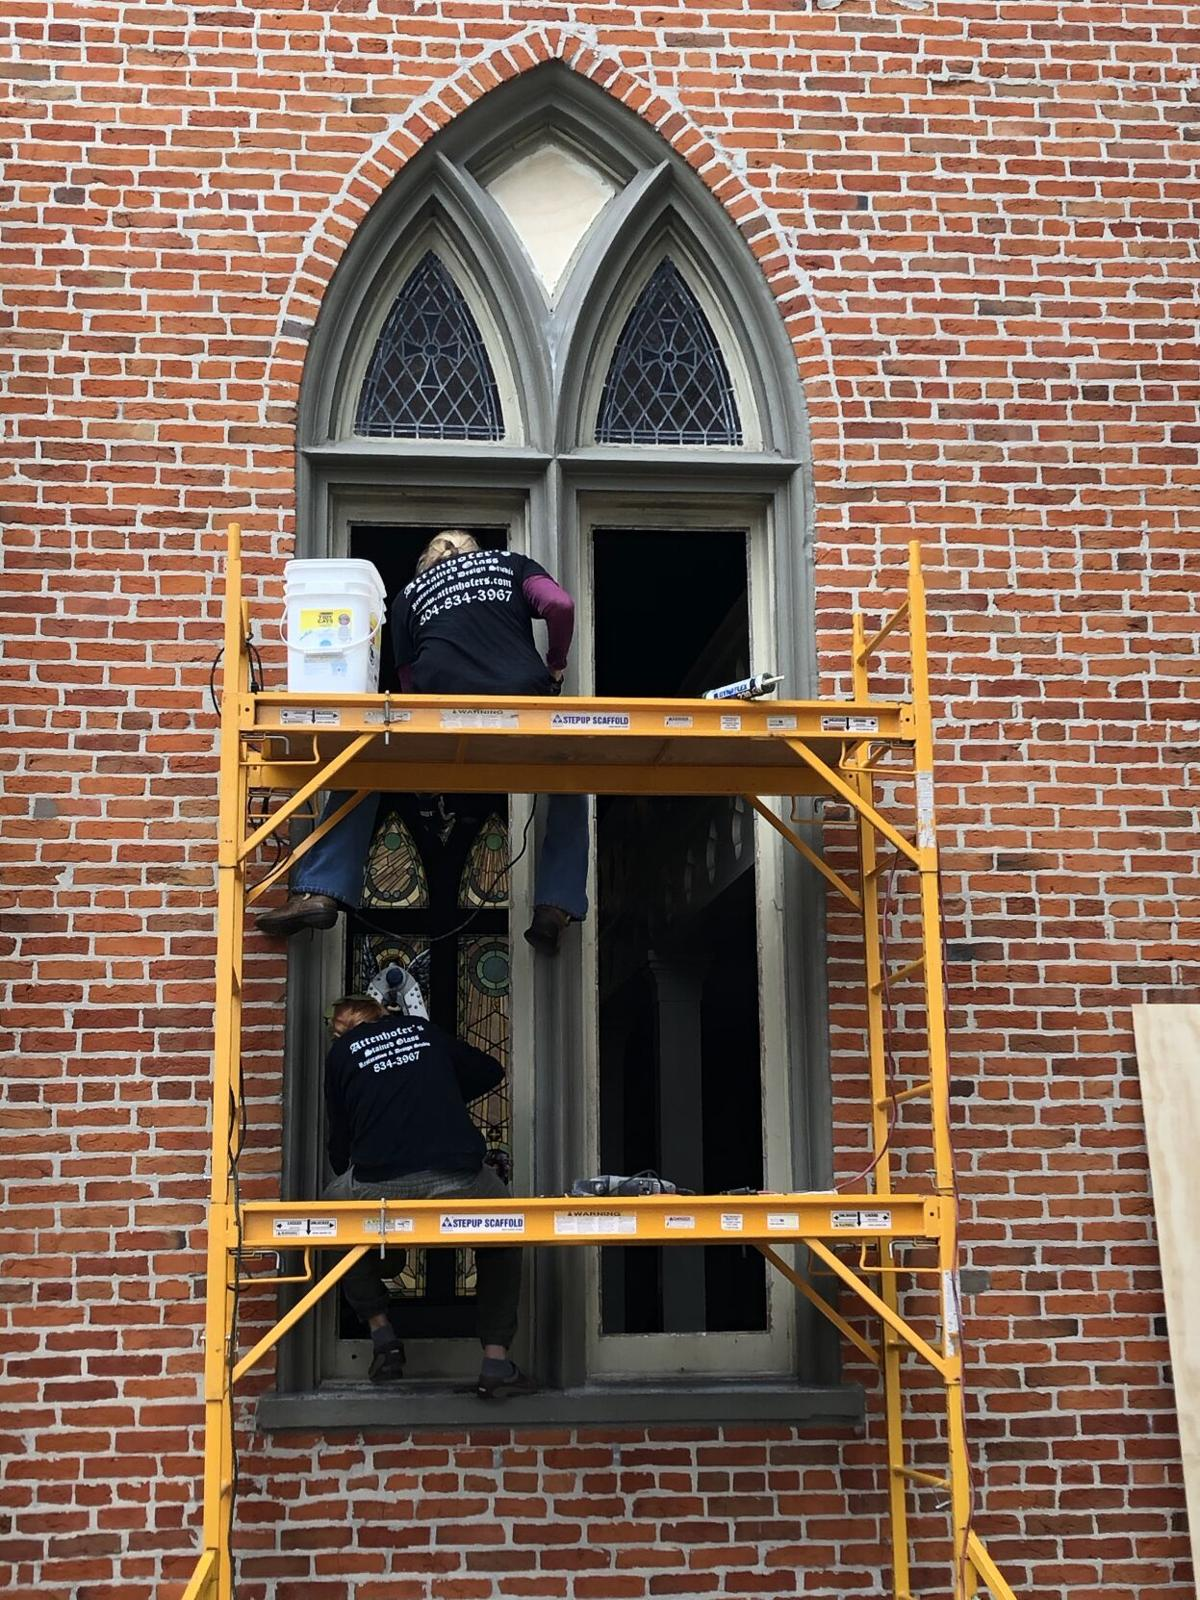 Crew working on stained glass